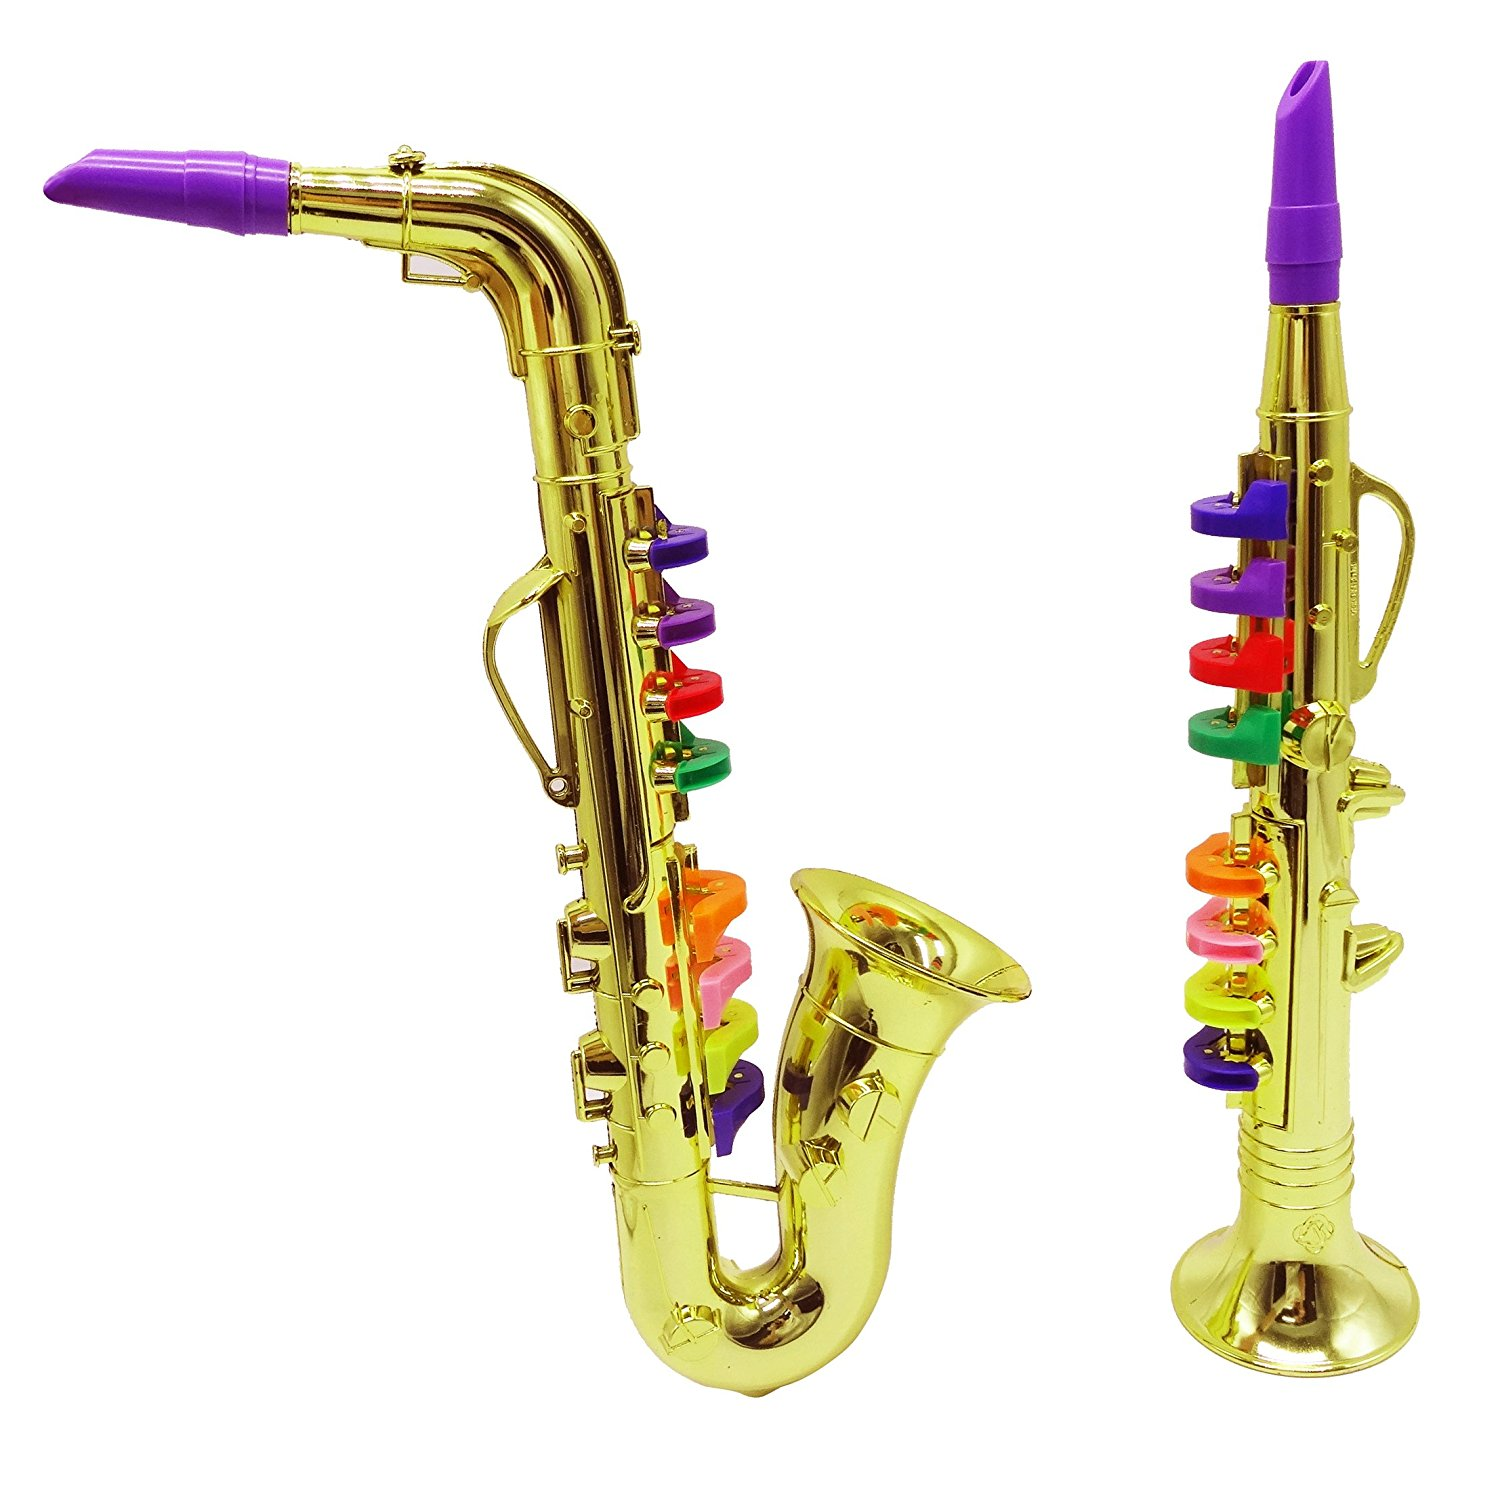 Set of 2 Music Instruments, Saxophone and Clarinet. Combo with over 10 Color Coded Teaching Songs included2